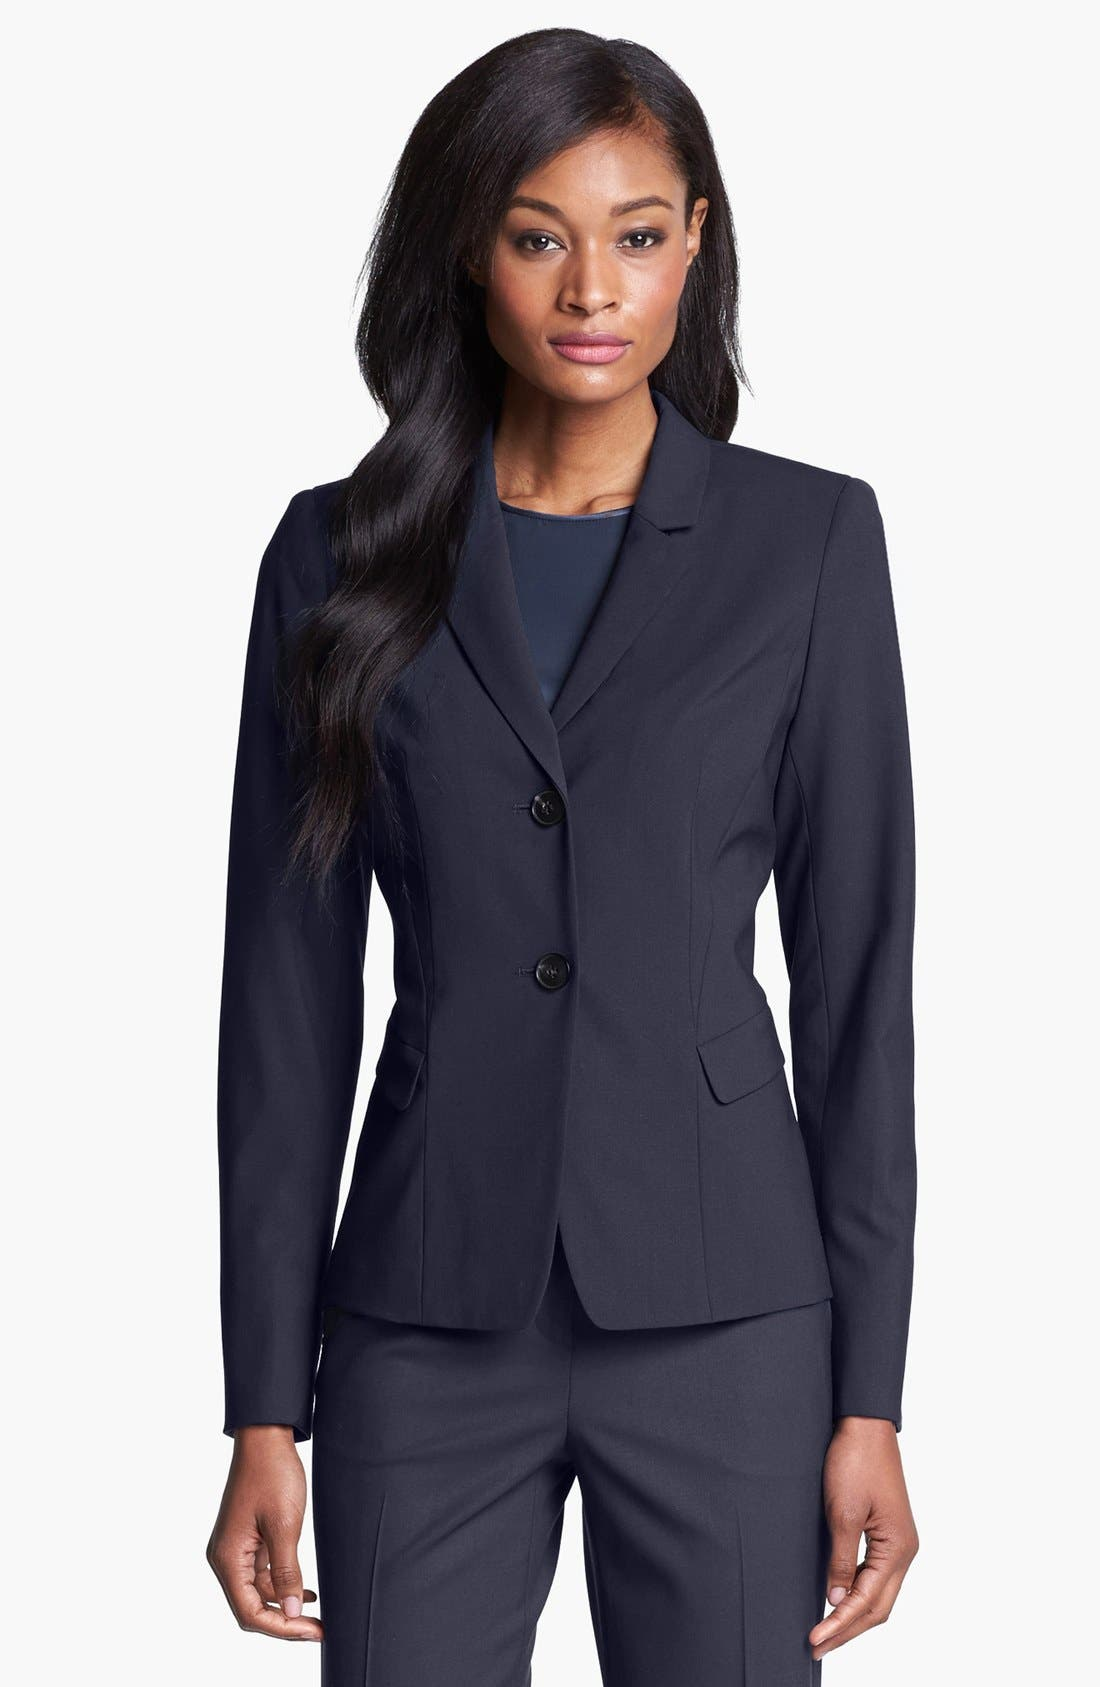 Alternate Image 1 Selected - Lafayette 148 New York 'Willa' Stretch Wool Jacket